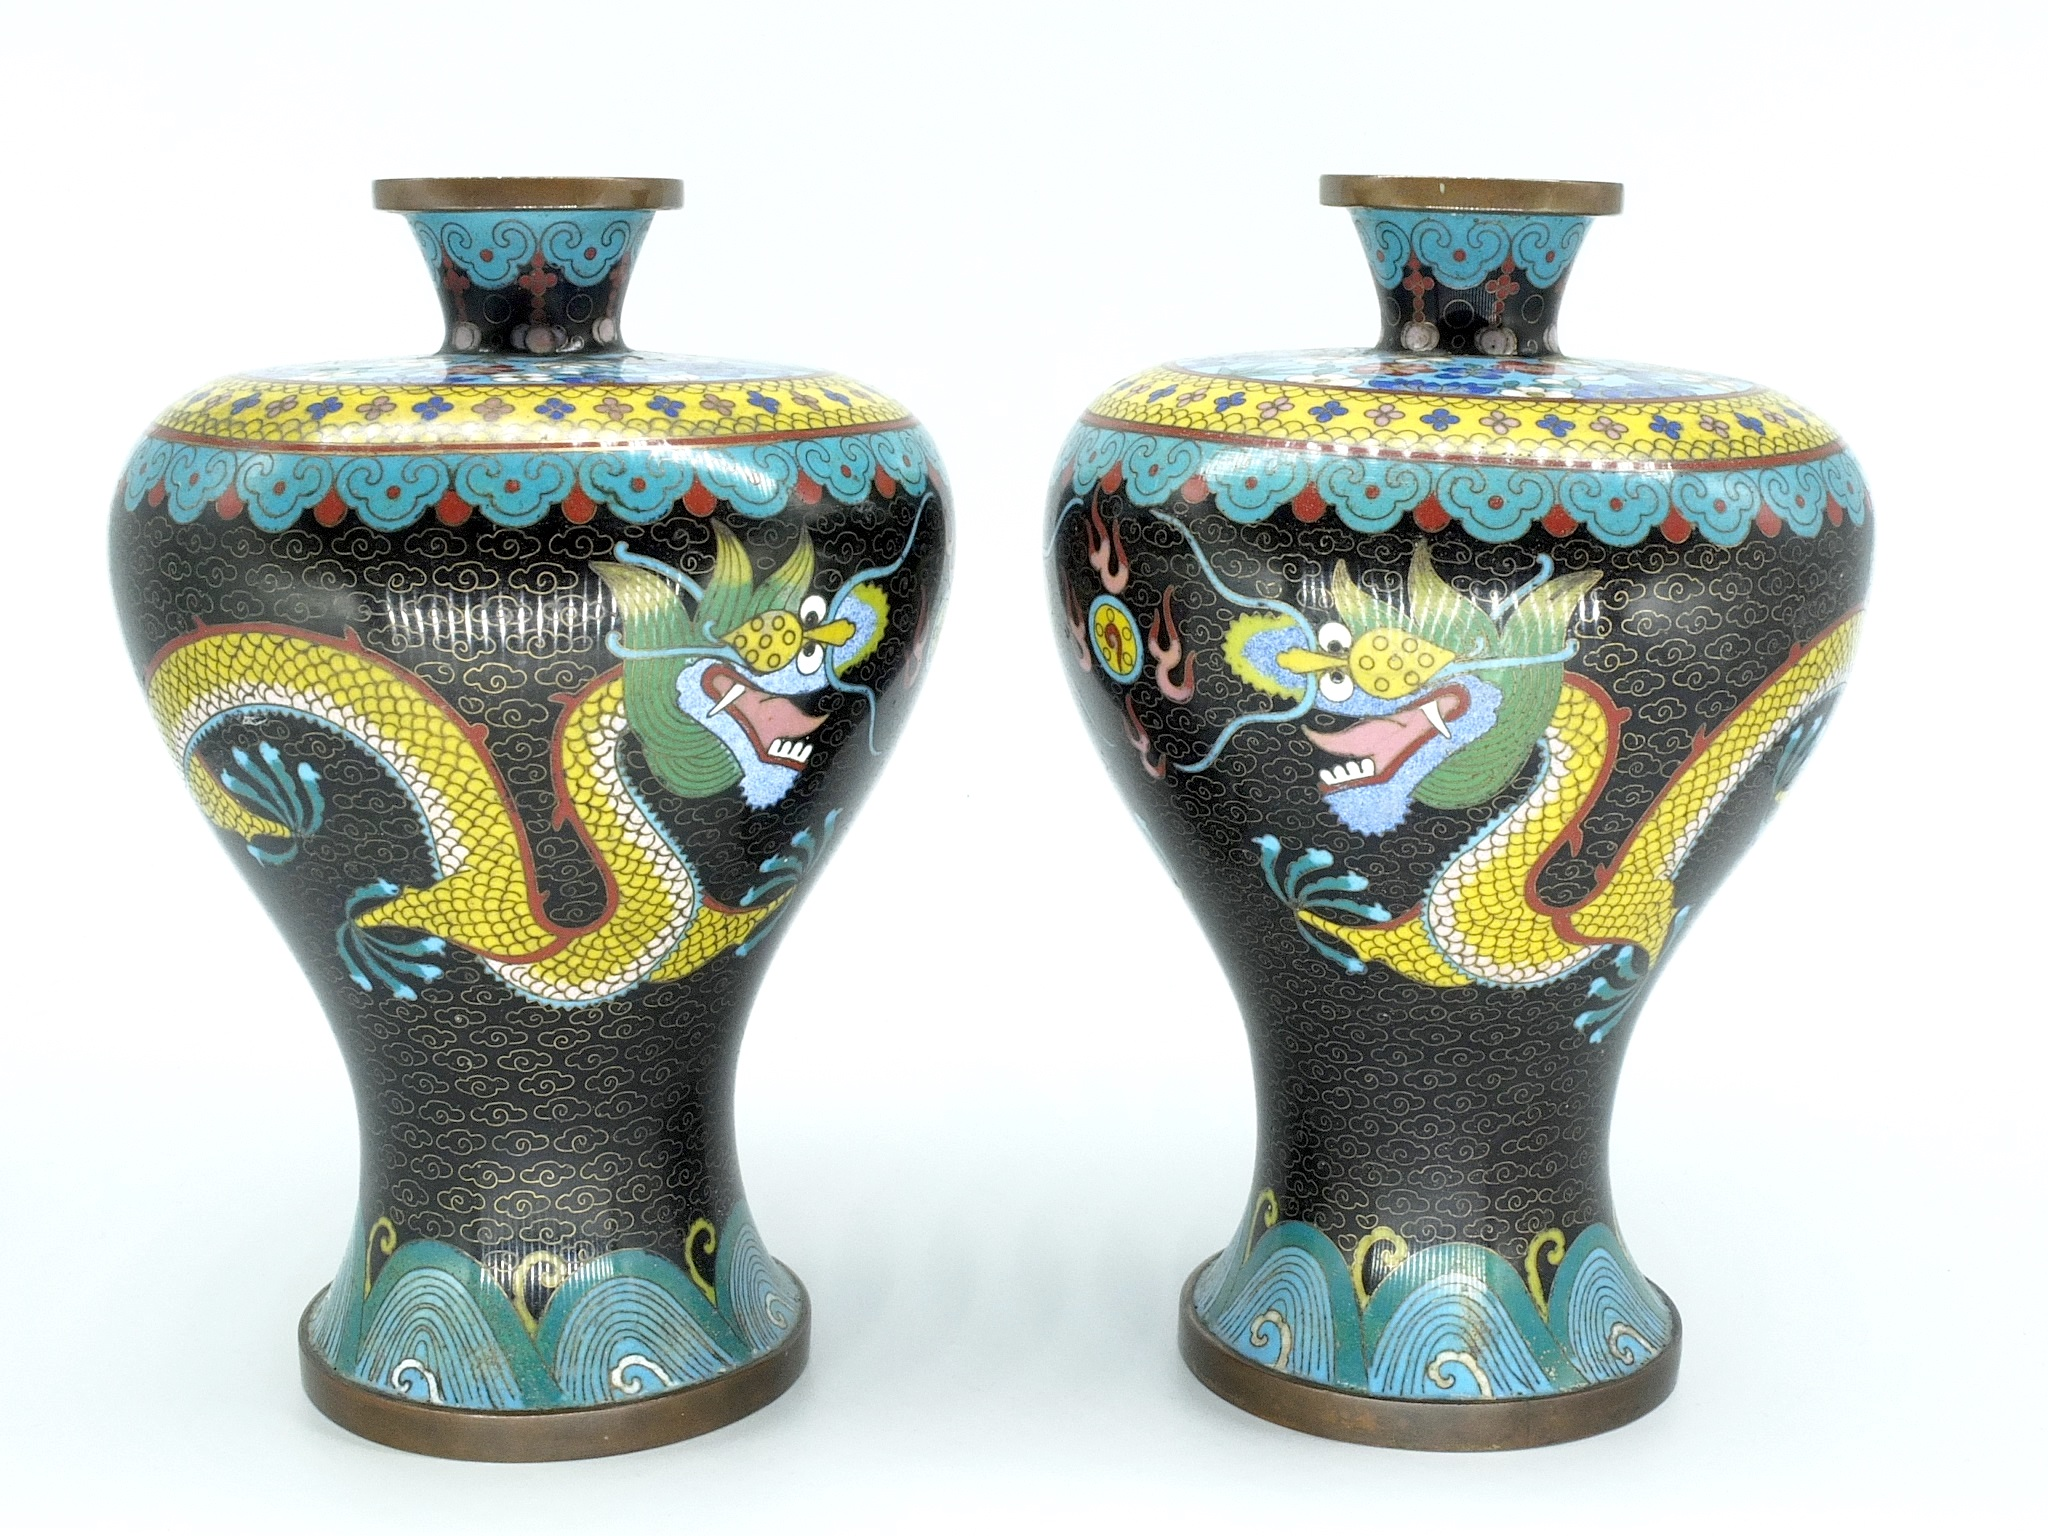 'Pair of Chinese Cloisonne Dragon Vases Early 20th Century'